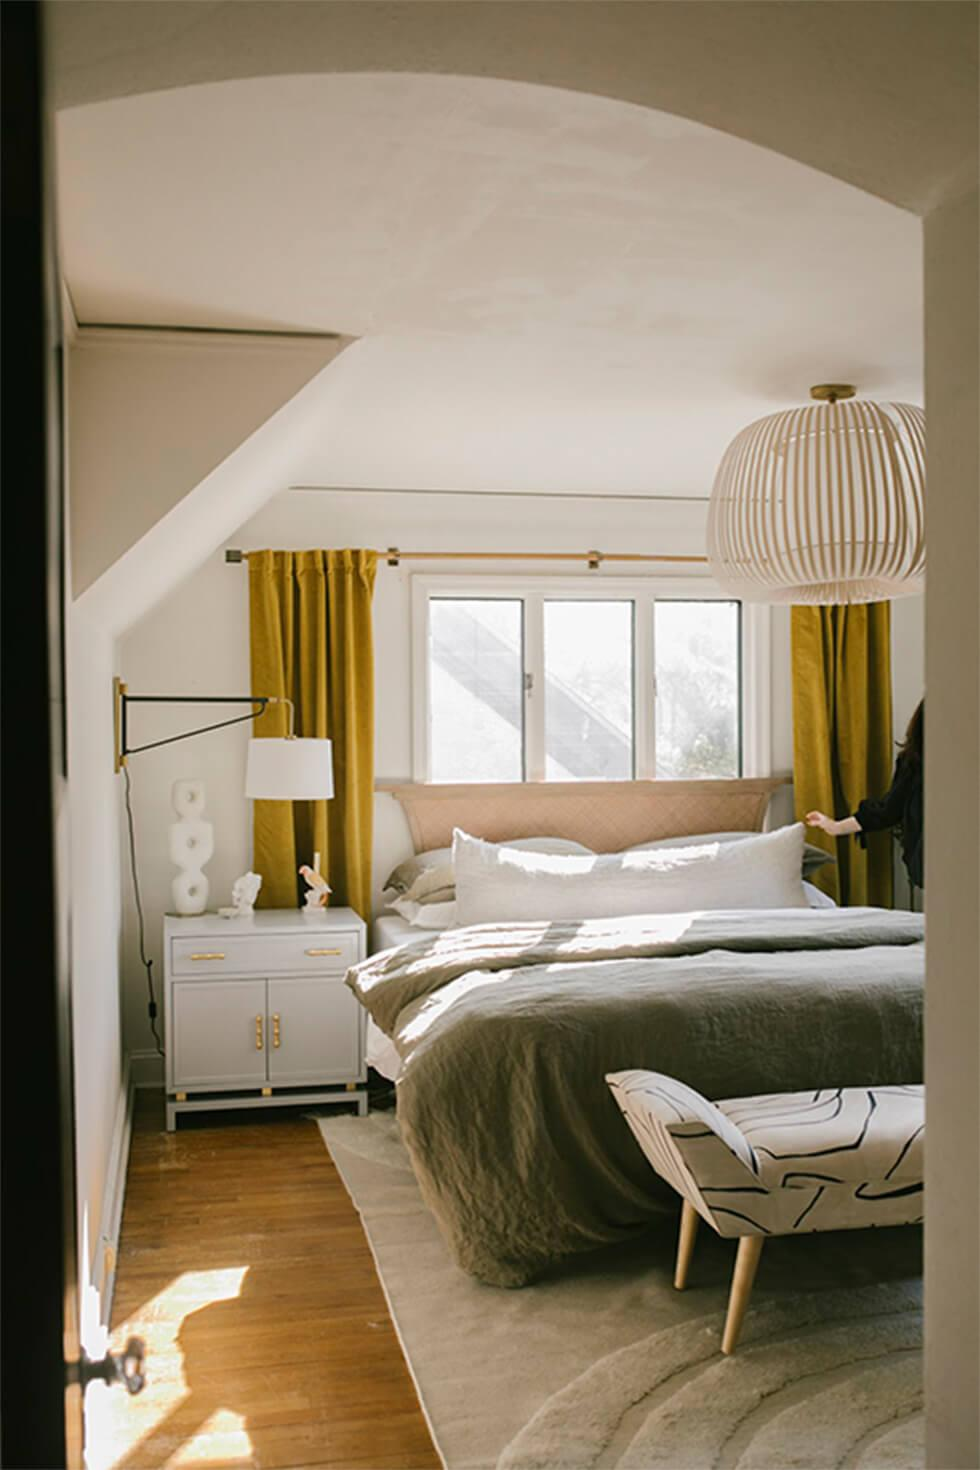 Monochrome bedroom with yellow curtains